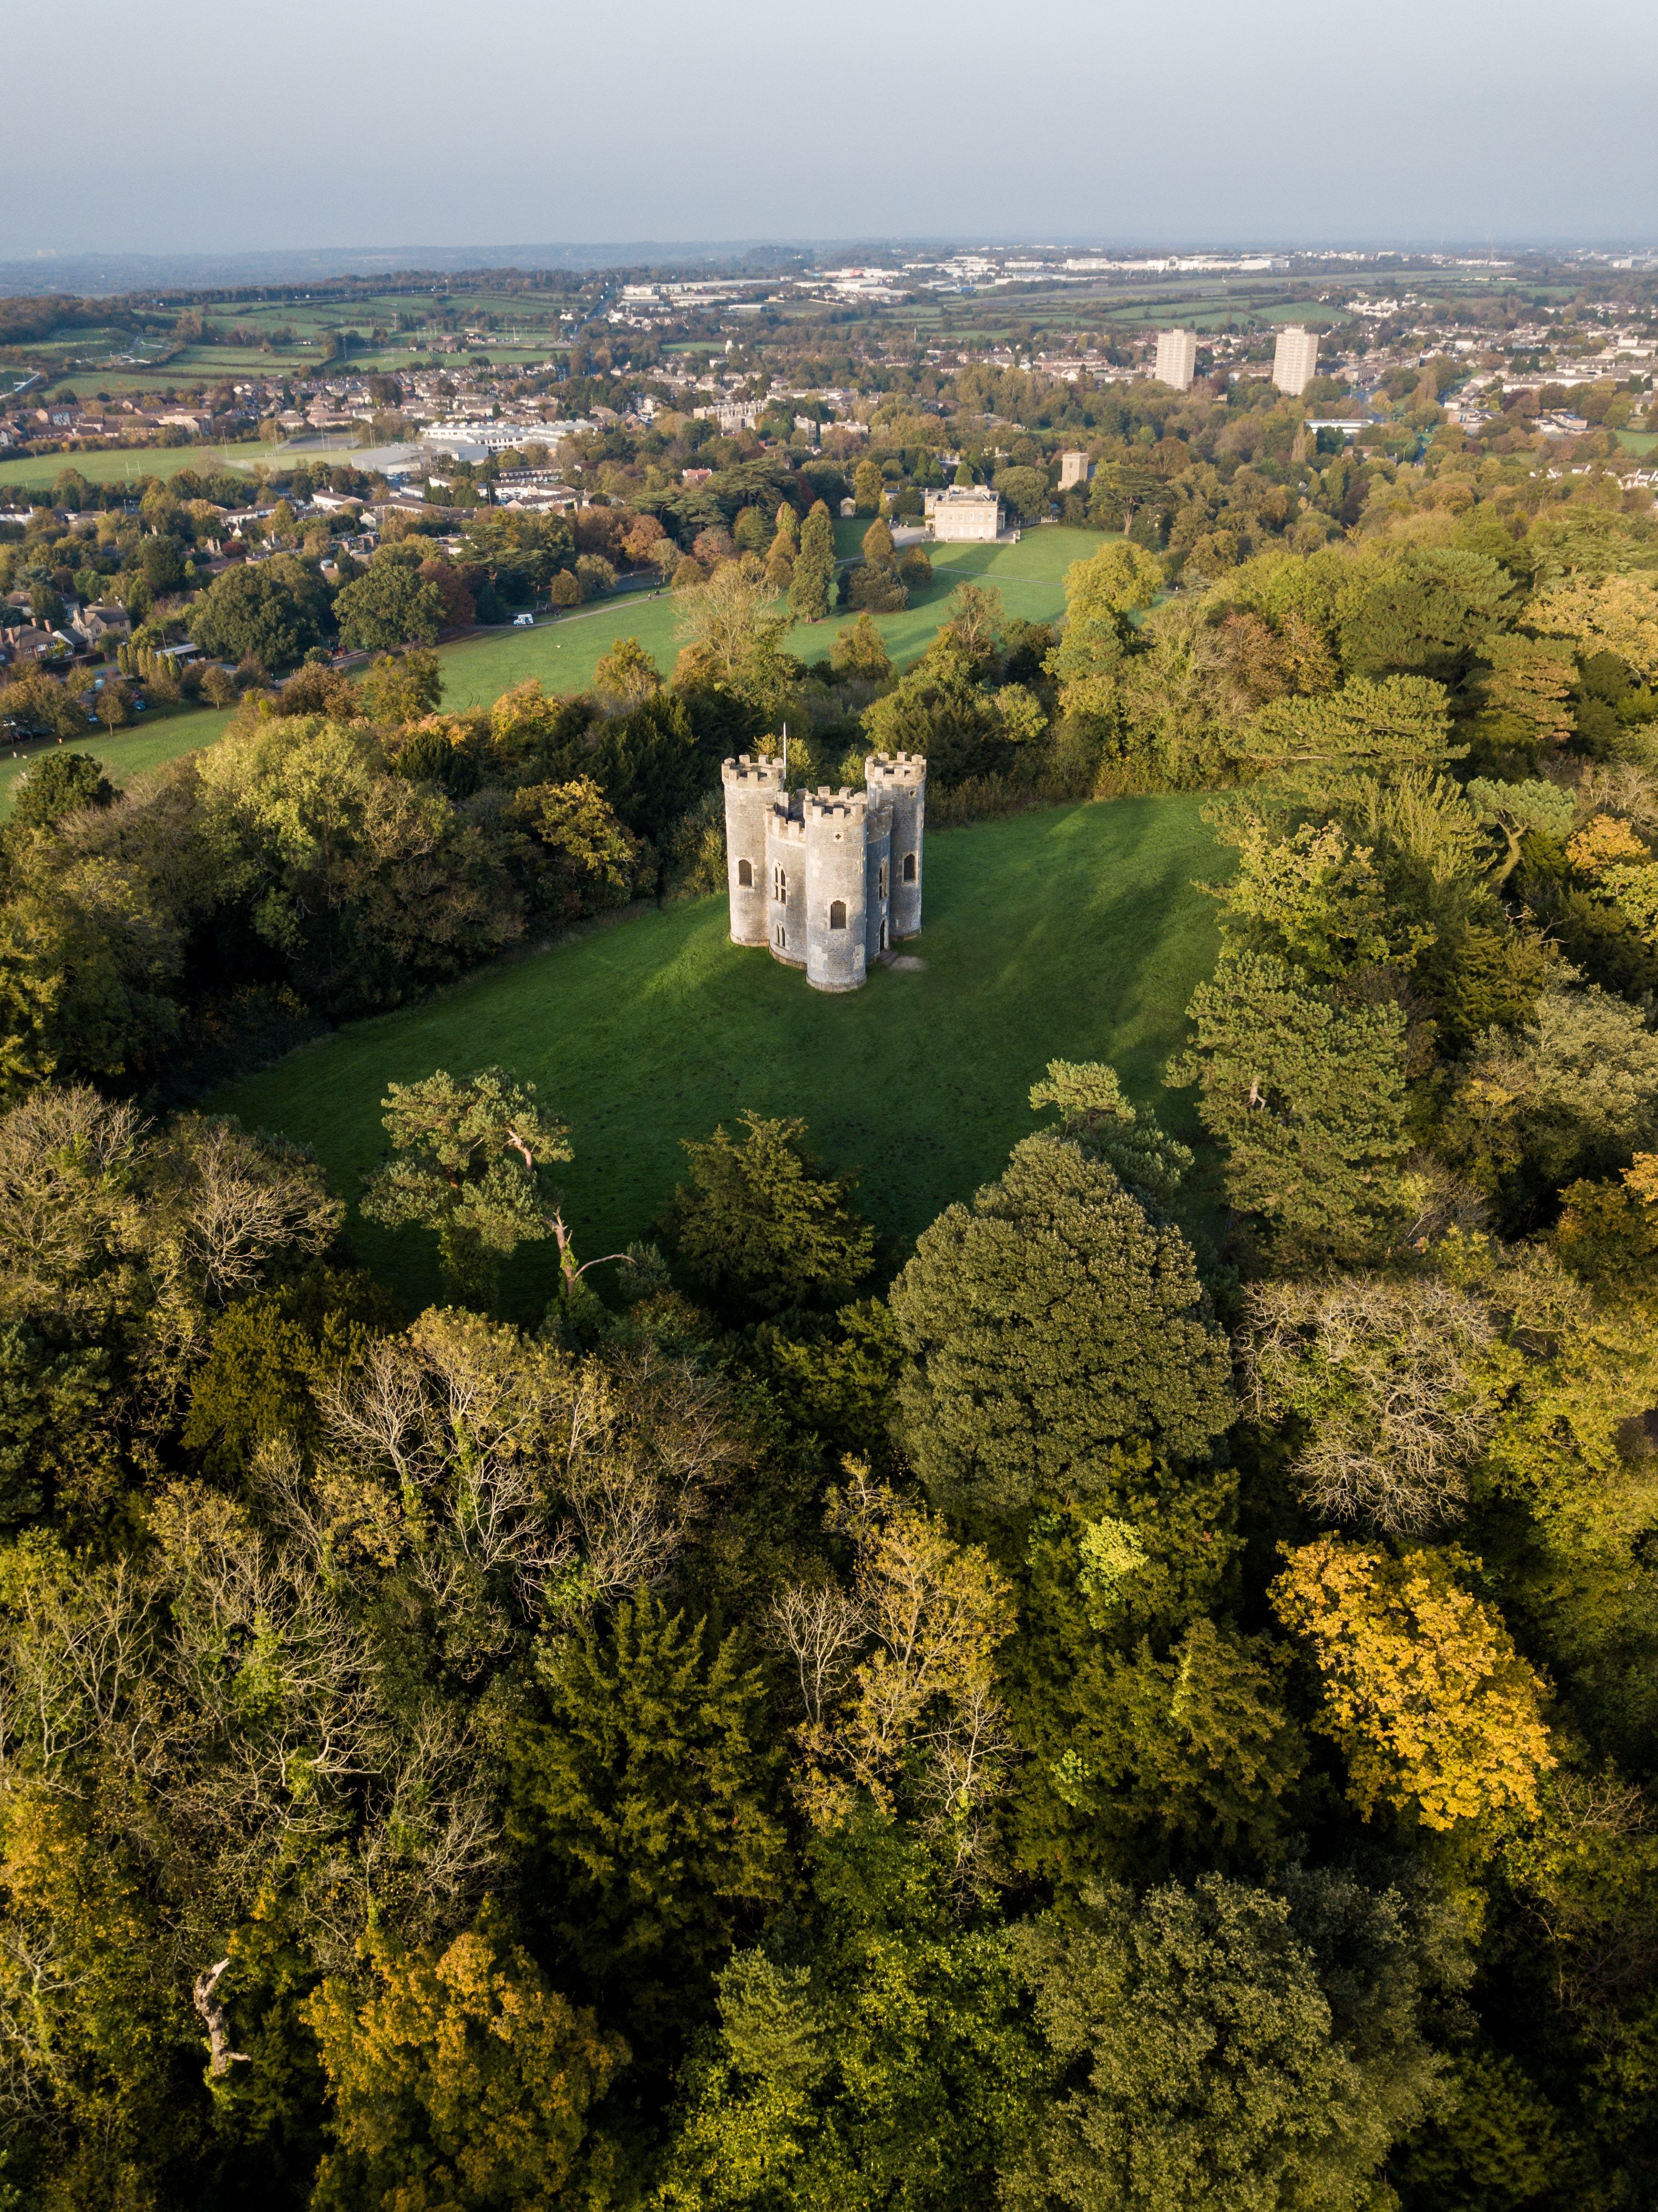 Things to do in Westbury-on-Trym image 1 Blaise Castle